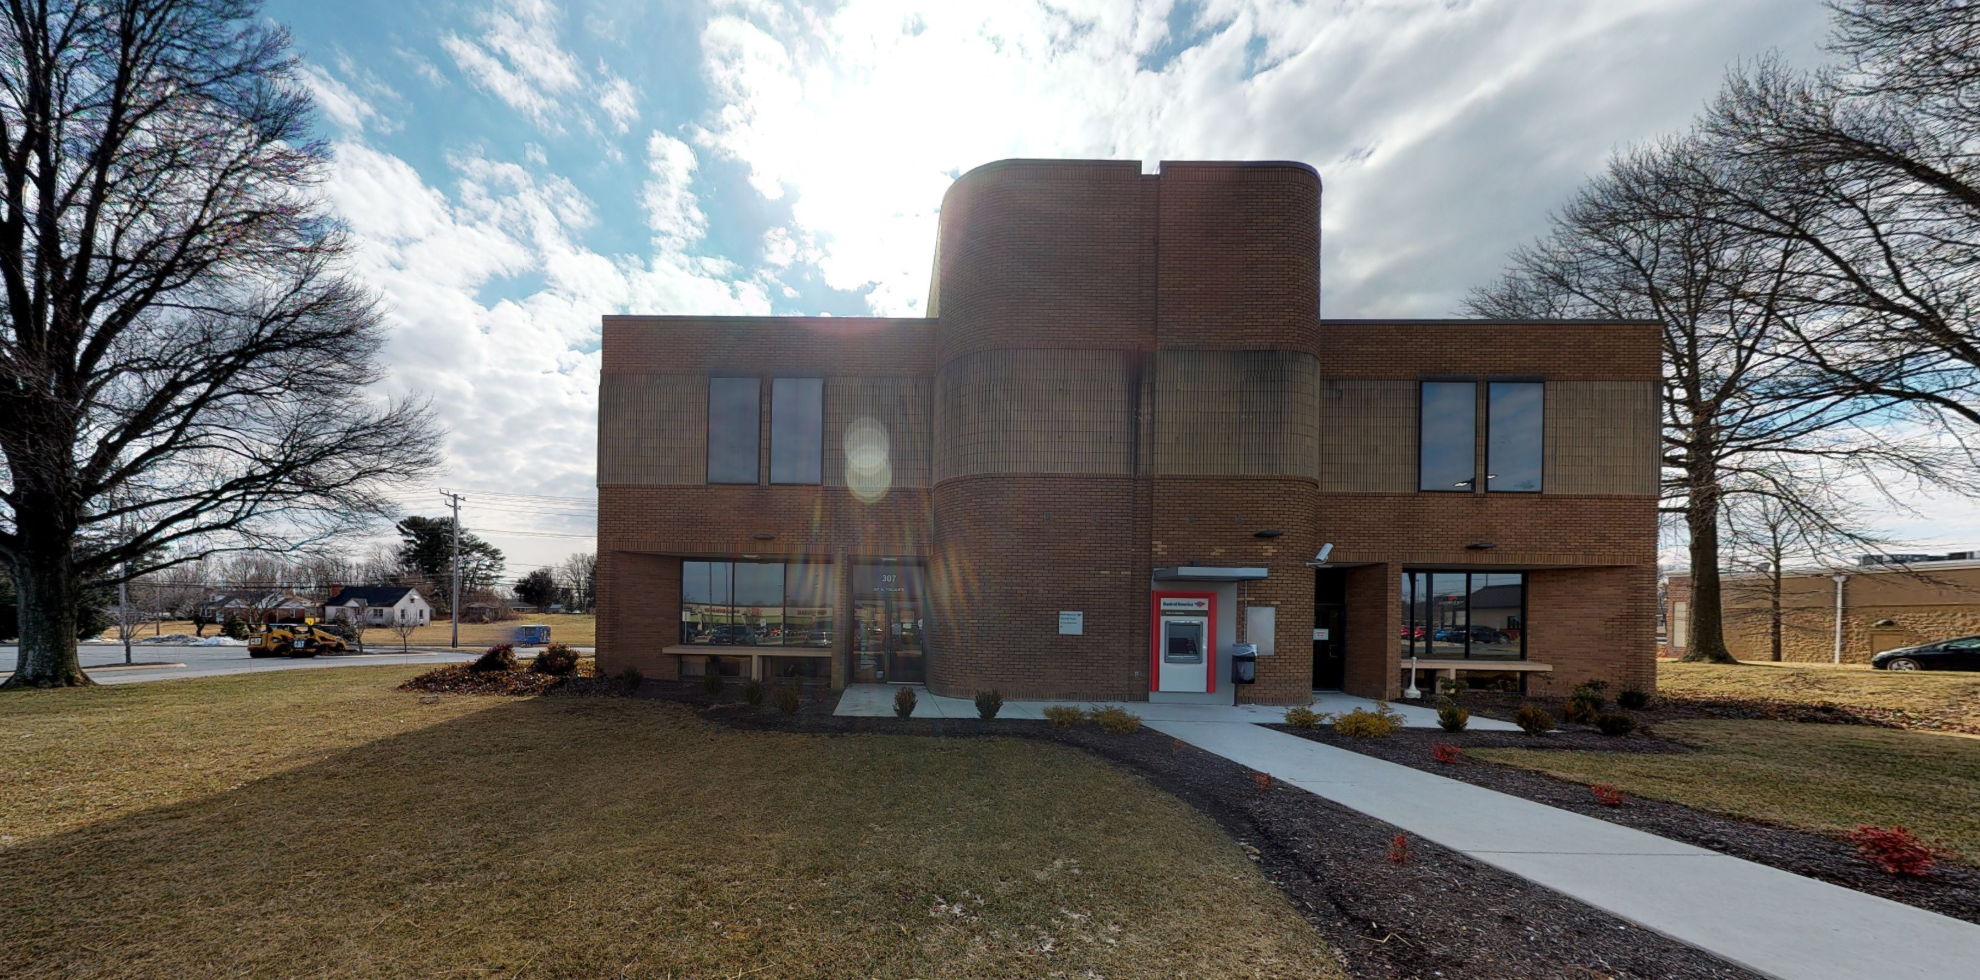 Bank of America financial center with drive-thru ATM | 307 S Tollgate Rd, Bel Air, MD 21014